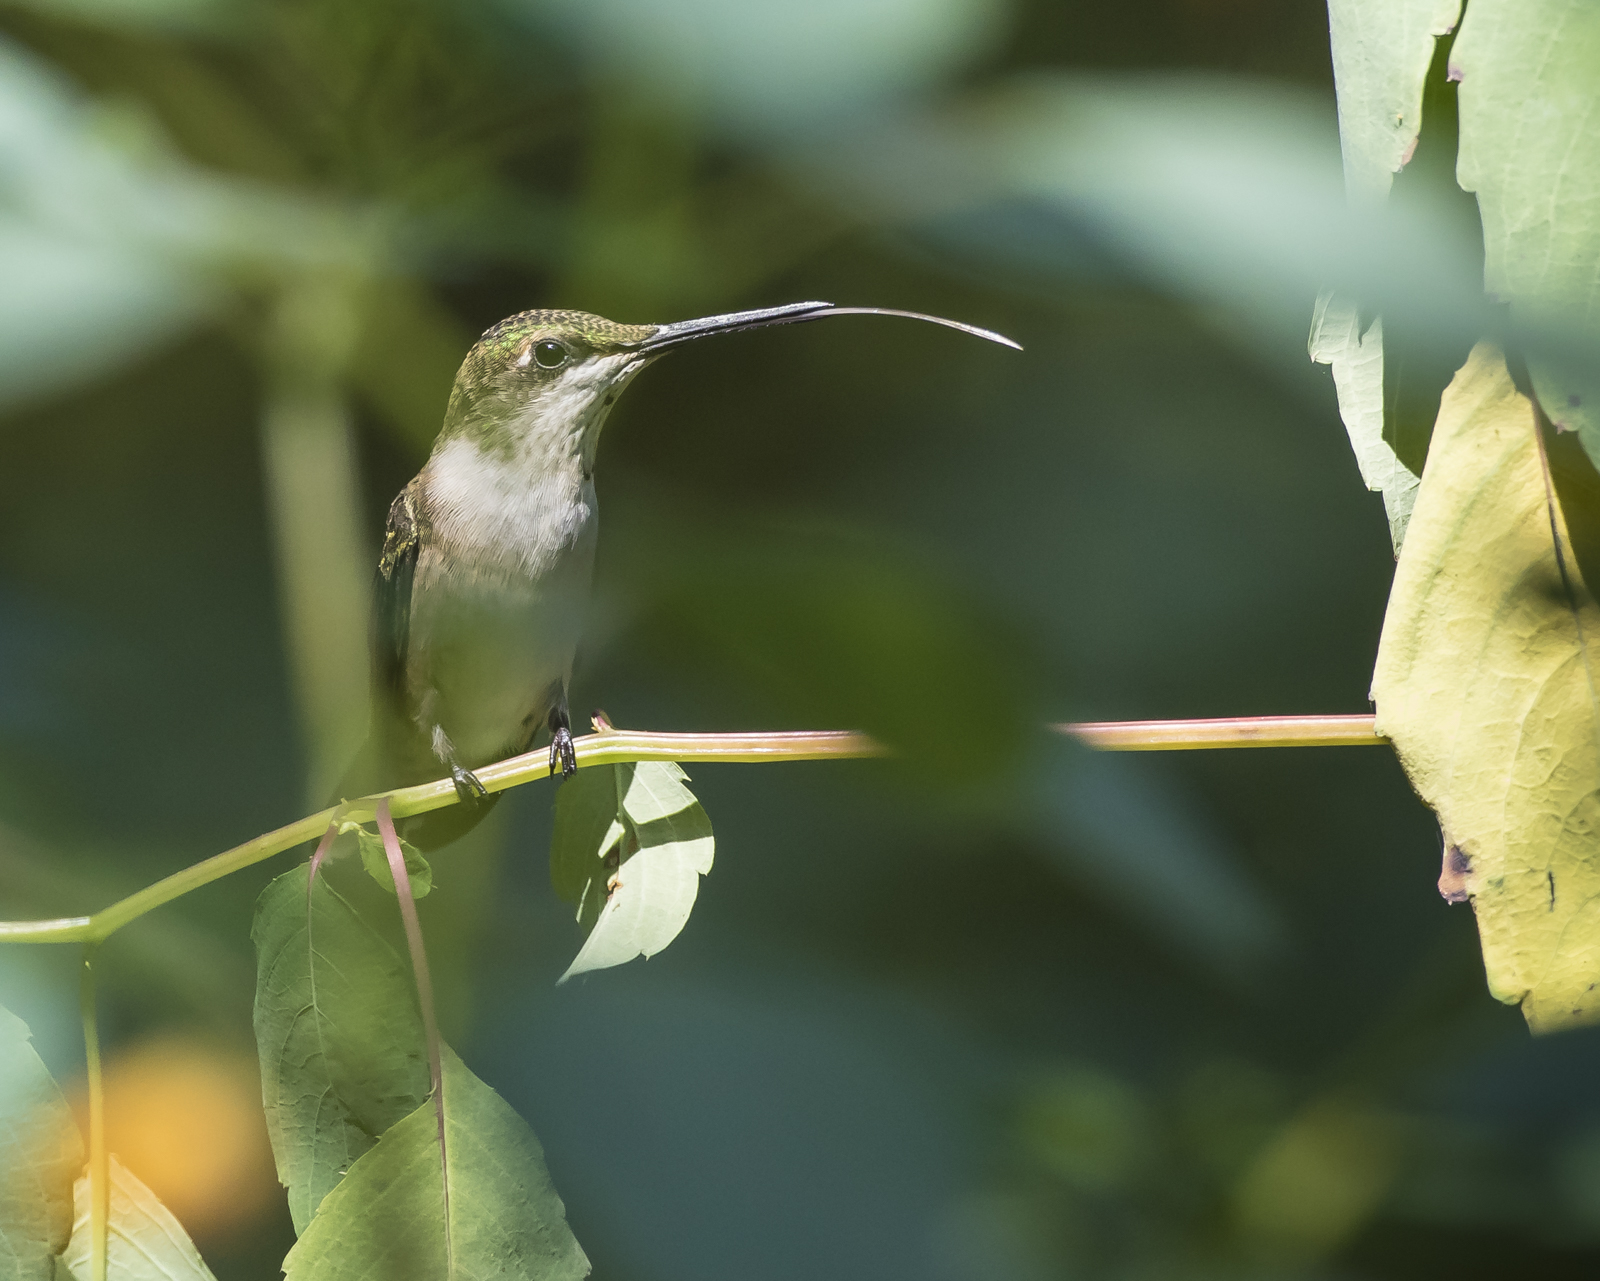 Hummingbird sticking out tongue